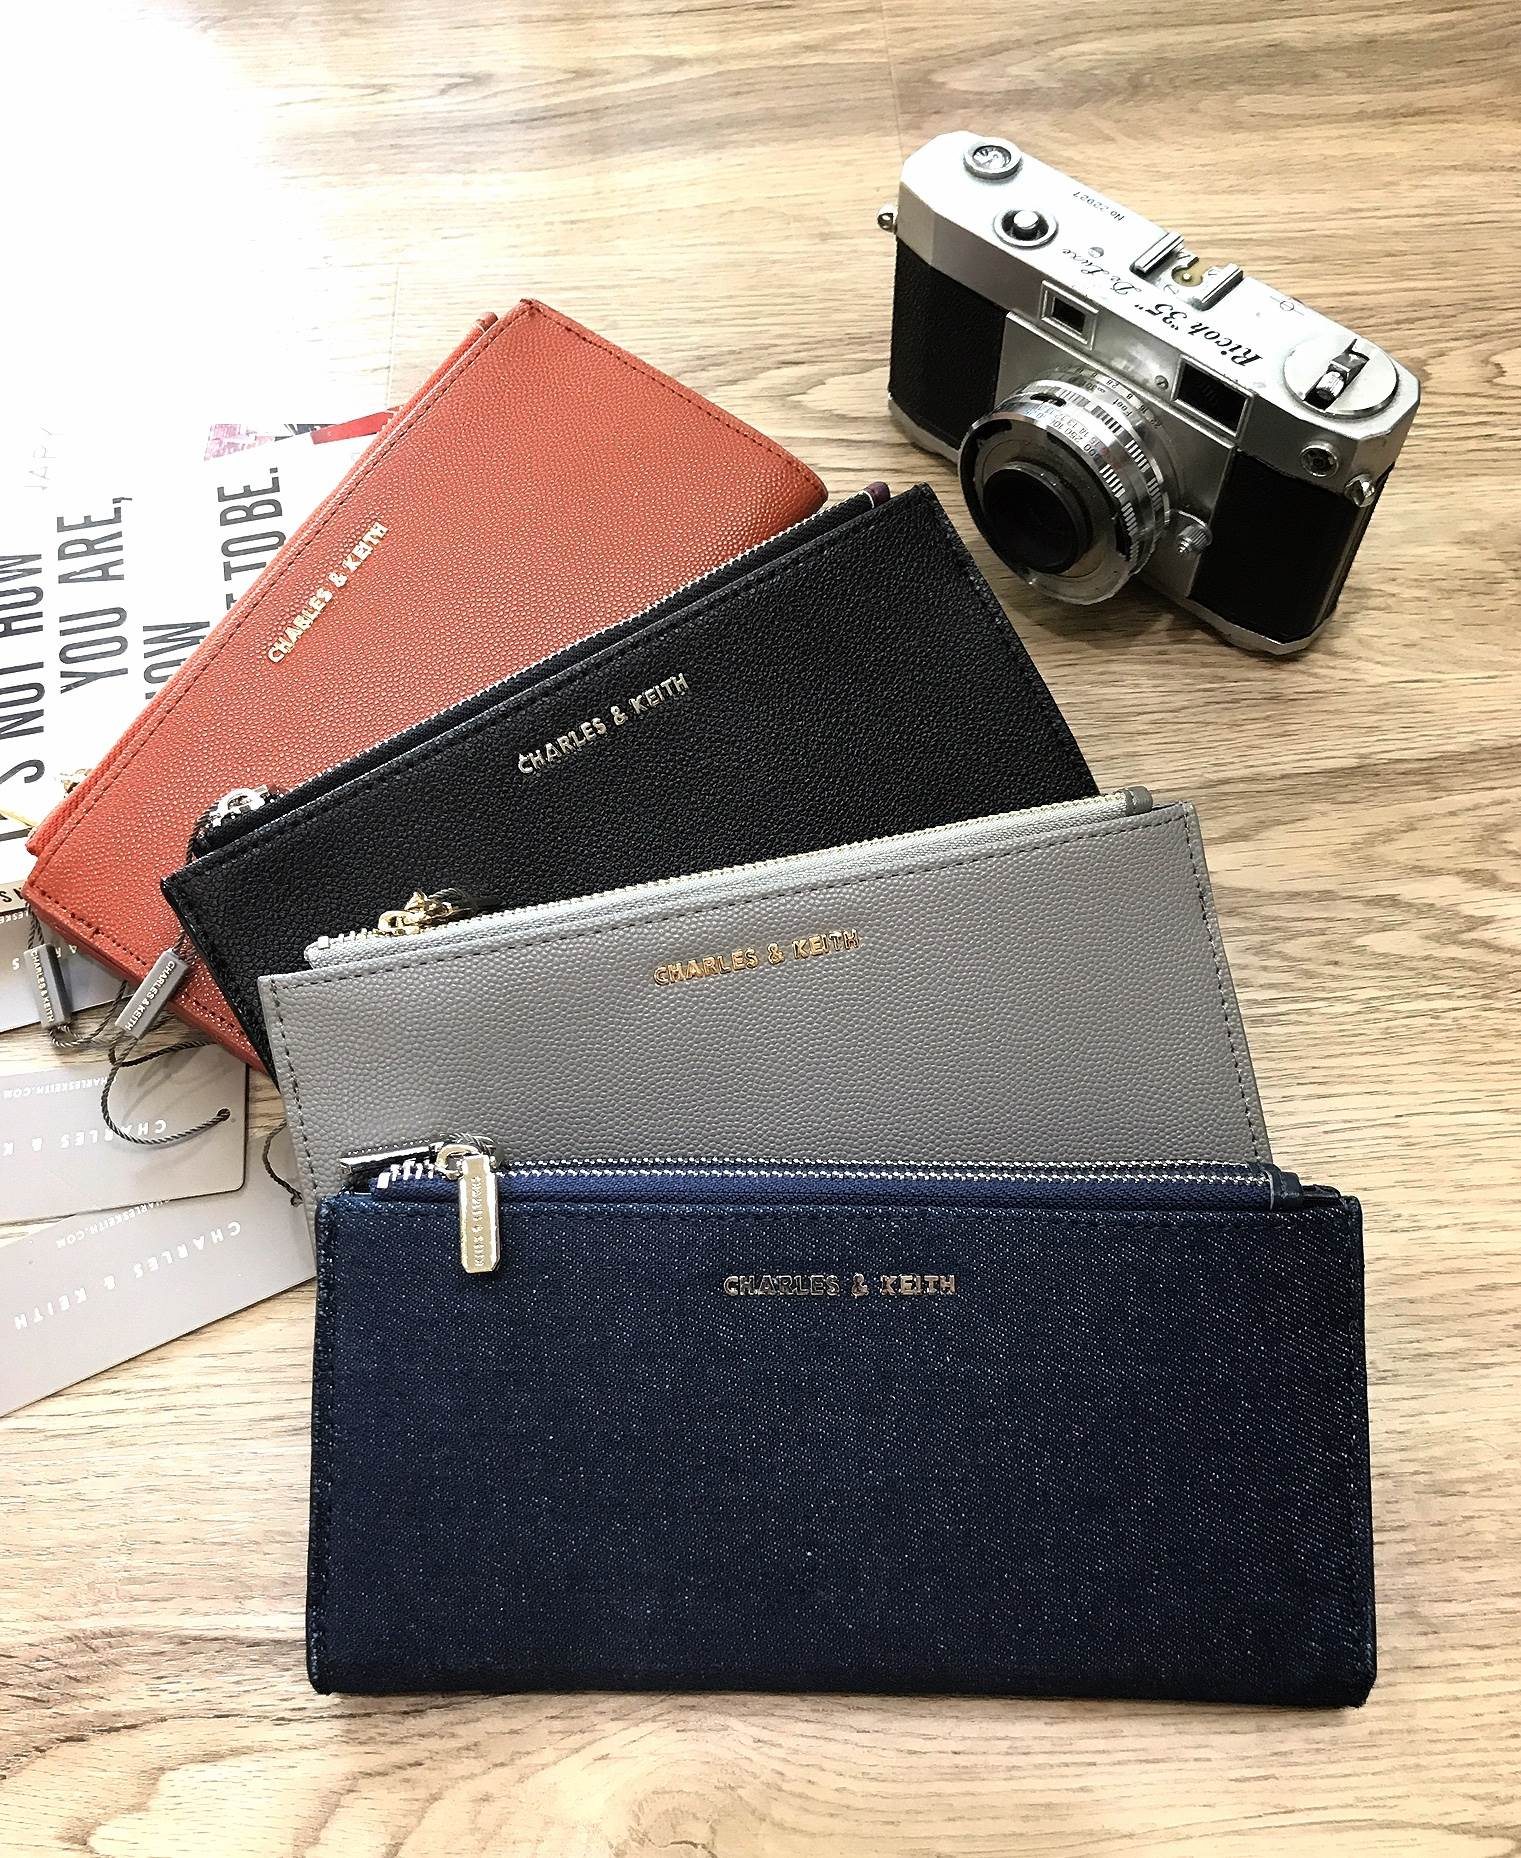 CHARLES & KEITH Zips Wallet 2018 free ถุงผ้า